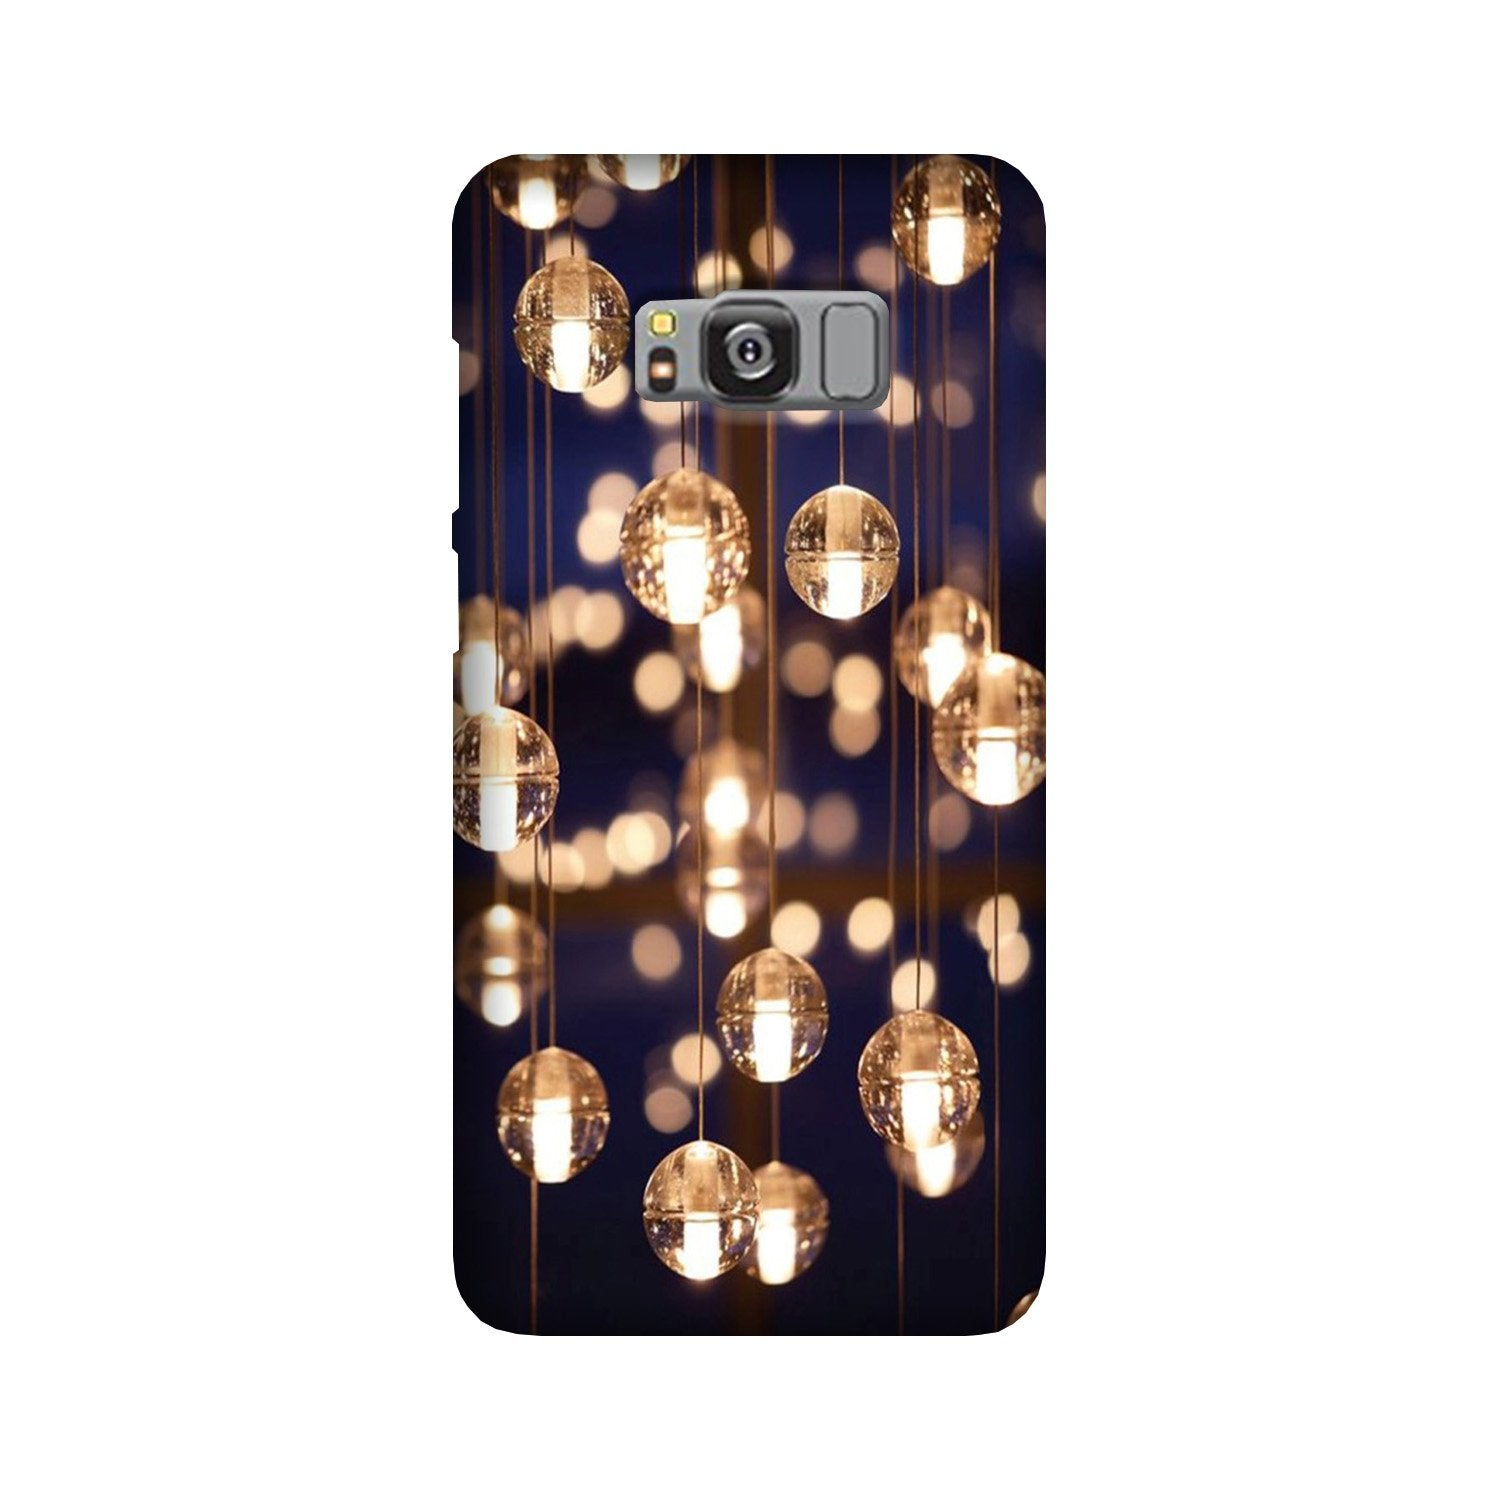 Party Bulb2 Case for Galaxy S8 Plus